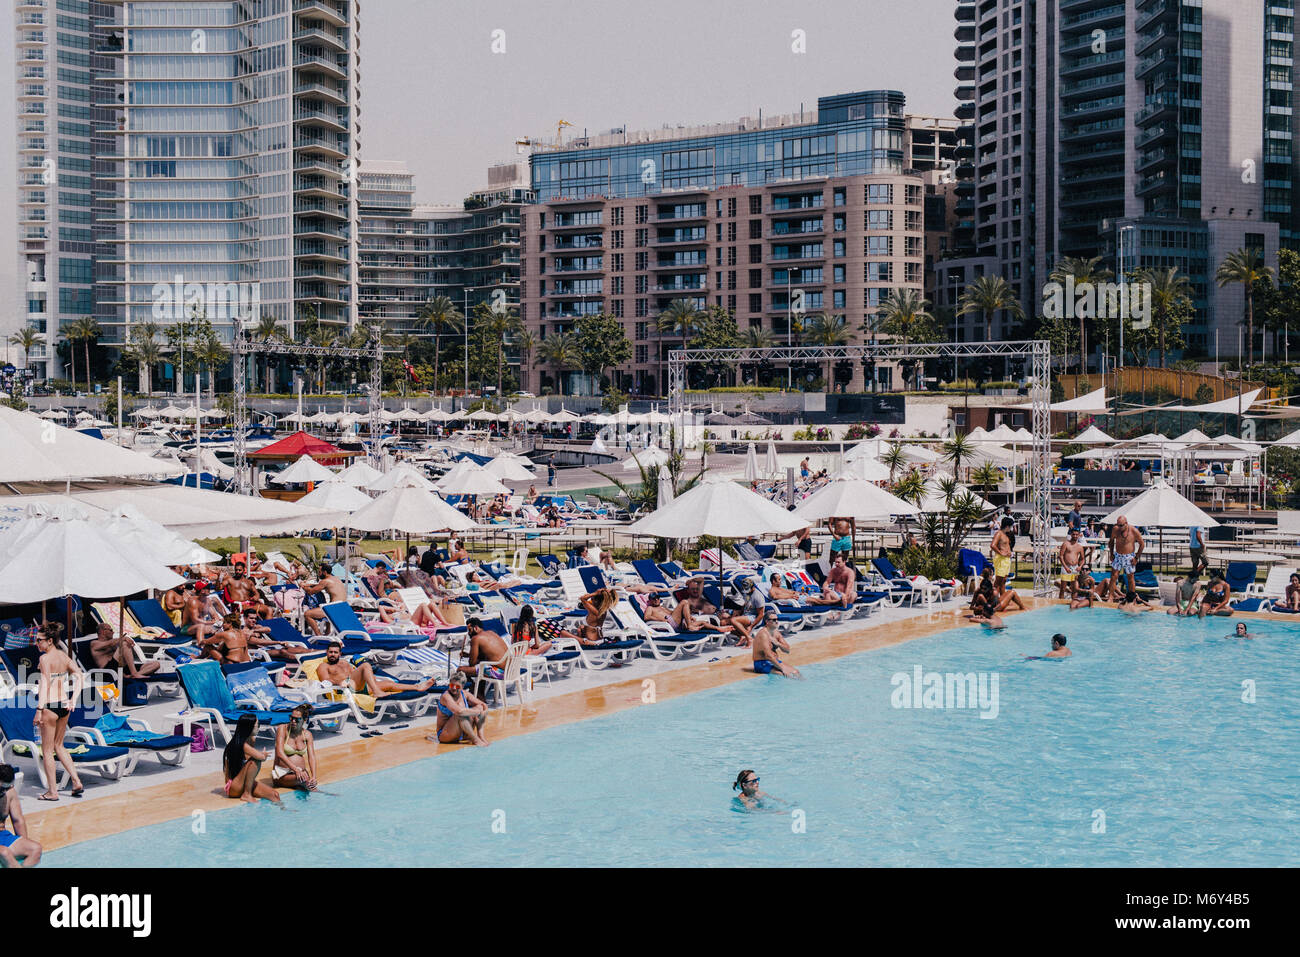 May 14th 2016. St. George's private members club, along the corniche in Beirut, Lebanon. - Stock Image